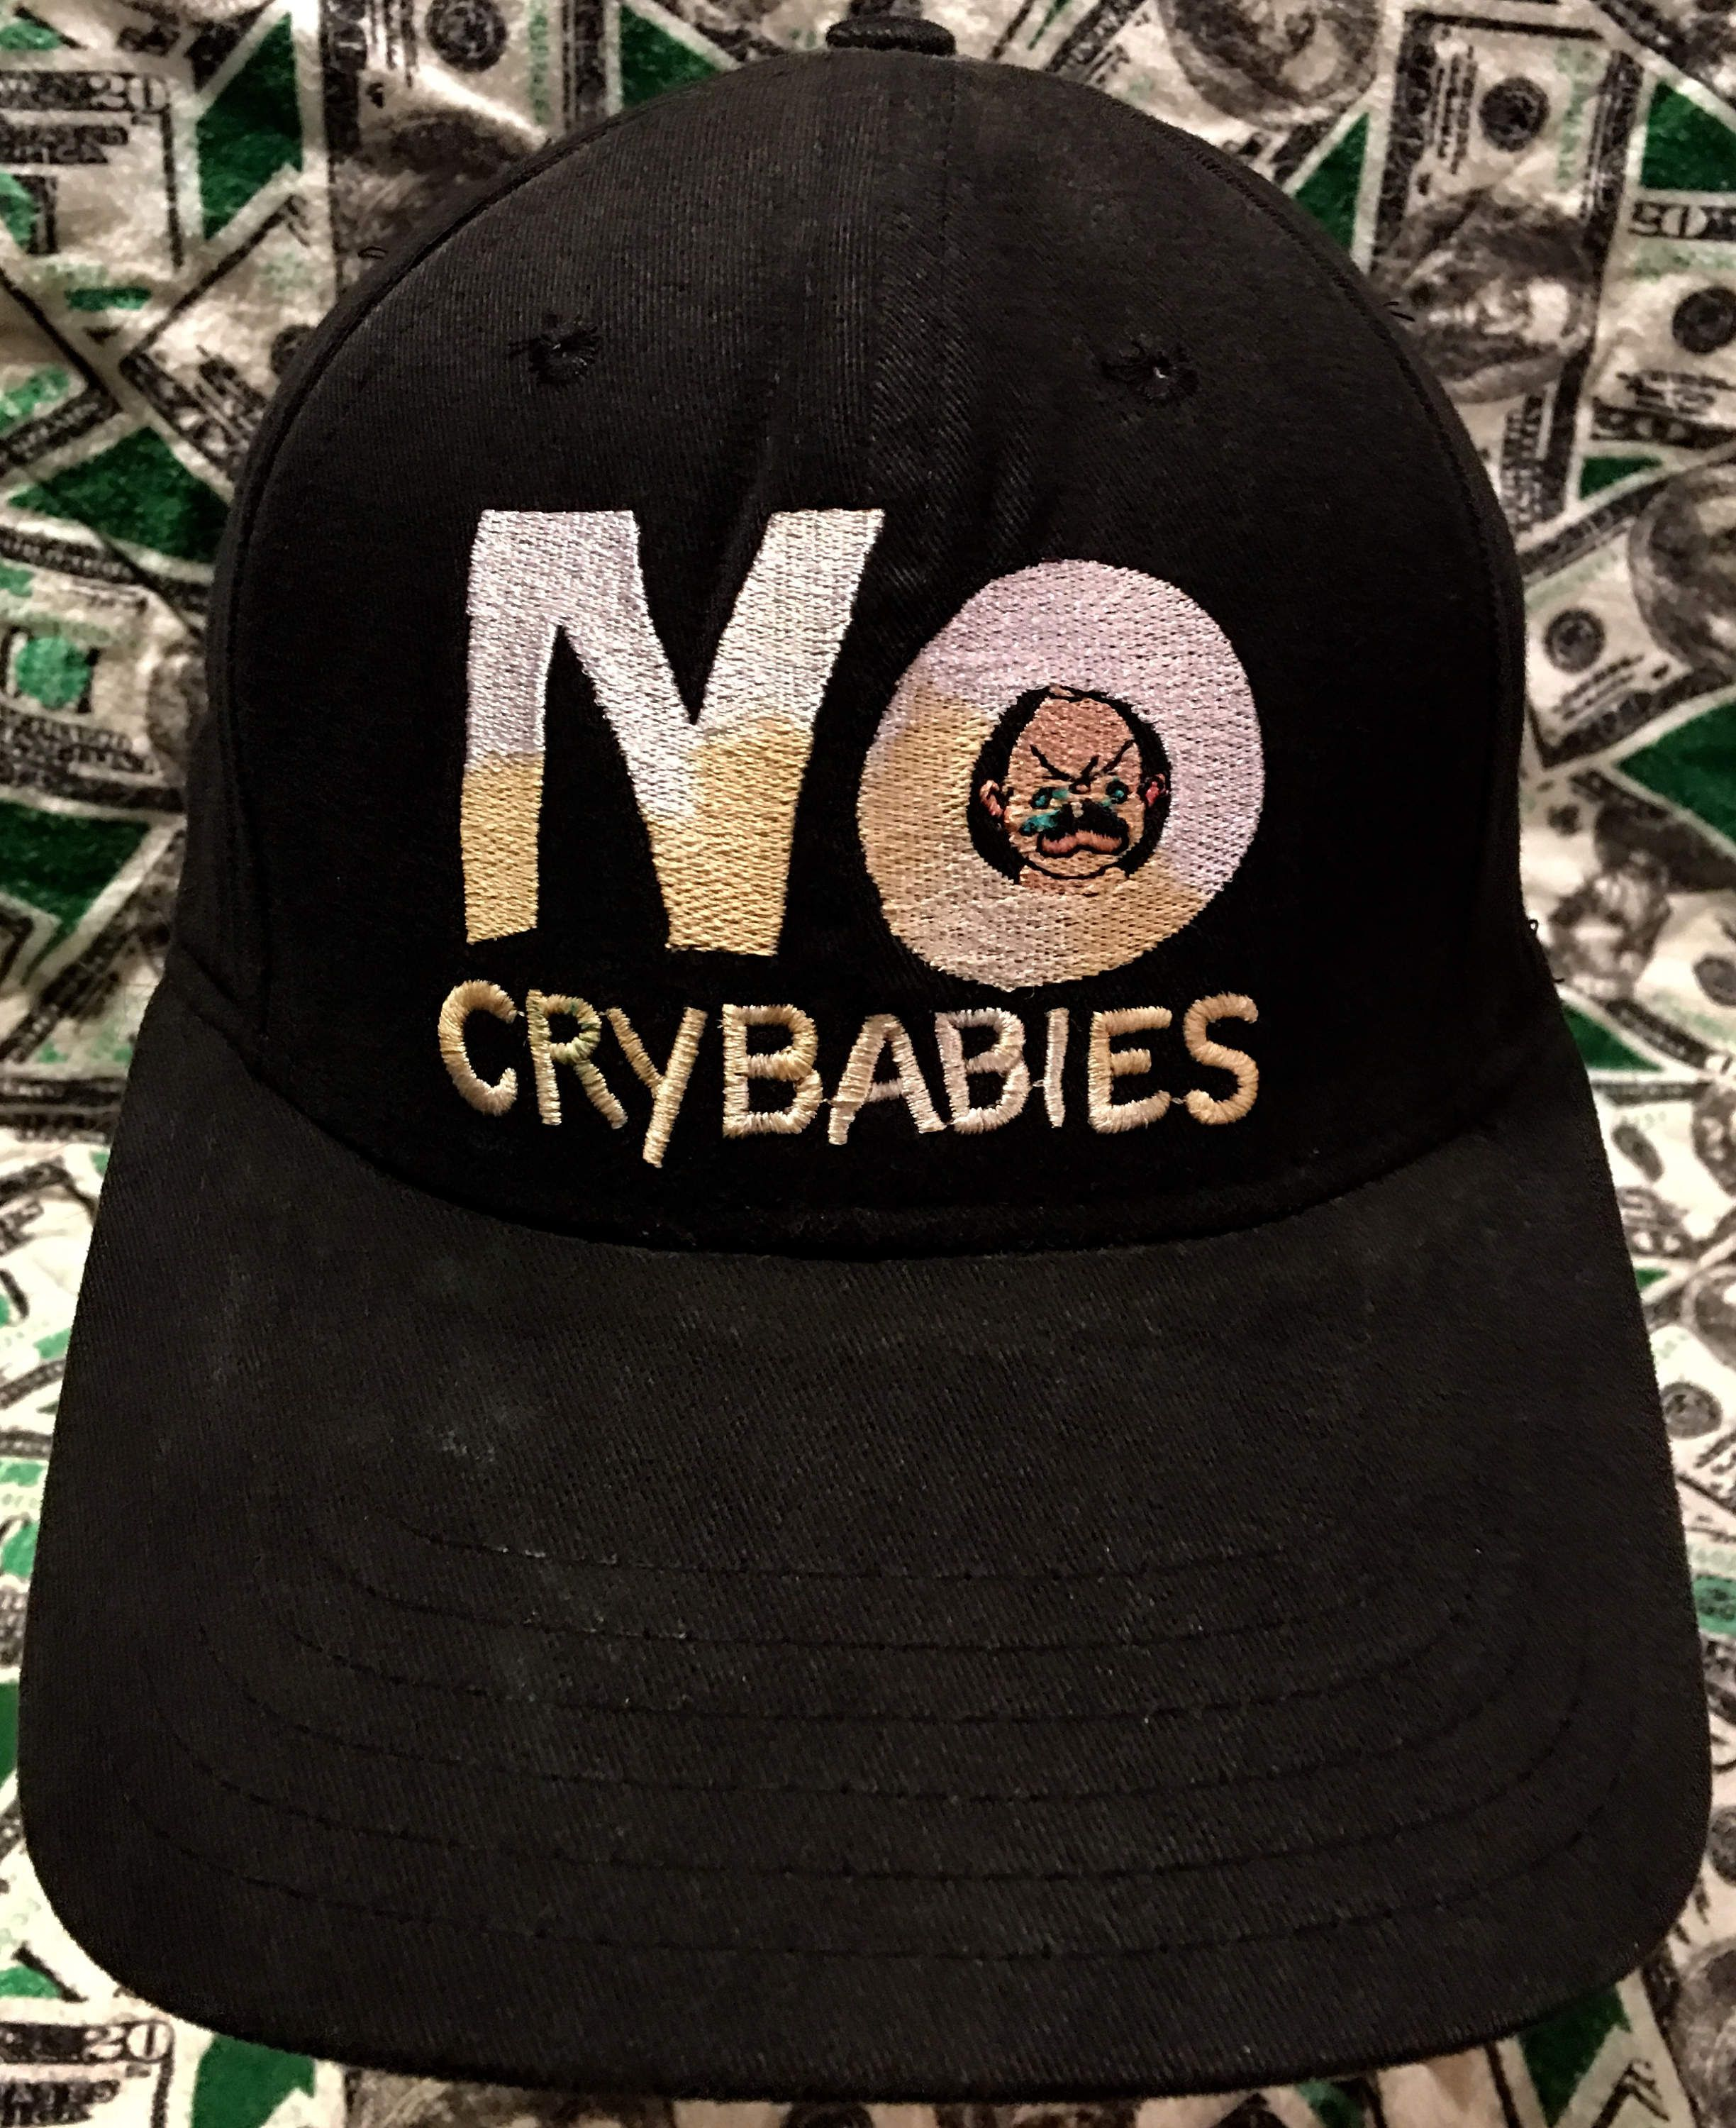 598a0bfc776 Vintage 90 s No Fear No Crybabies Adjustable Snapback Cap by  CoryCranksOutHats on Etsy